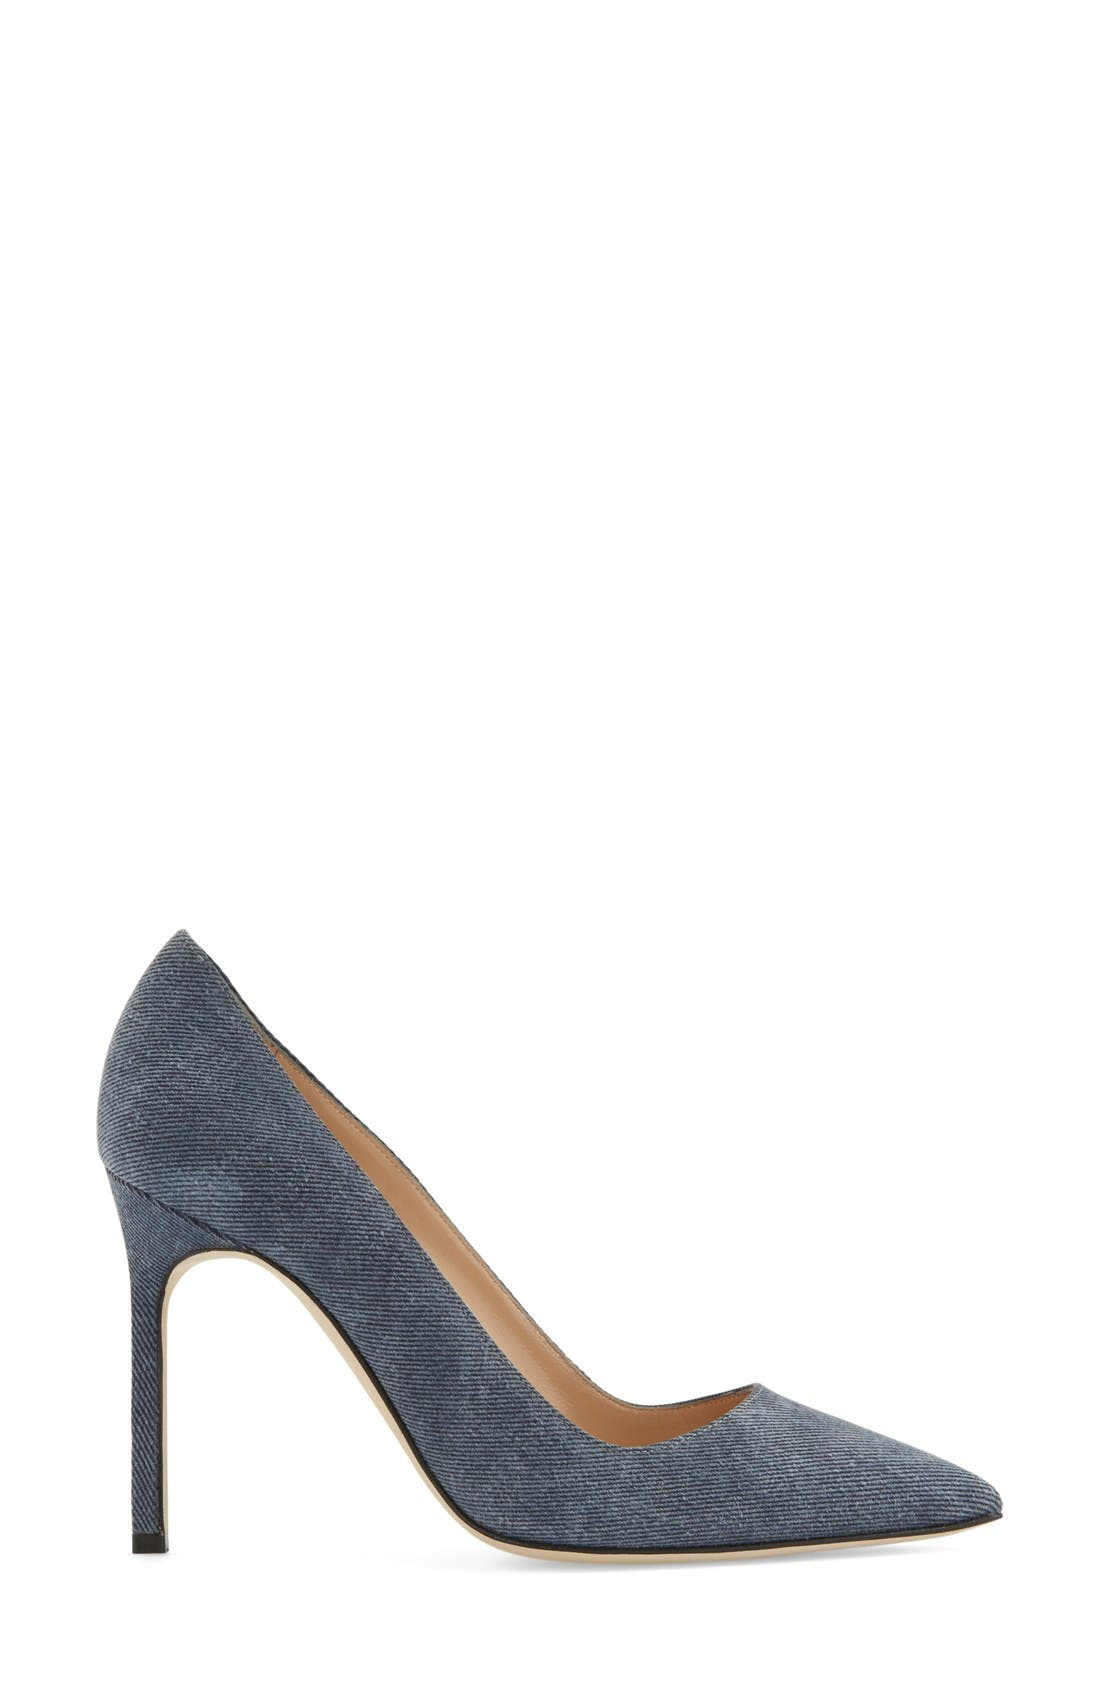 BB Pointy Toe Pump,                             Alternate thumbnail 51, color,